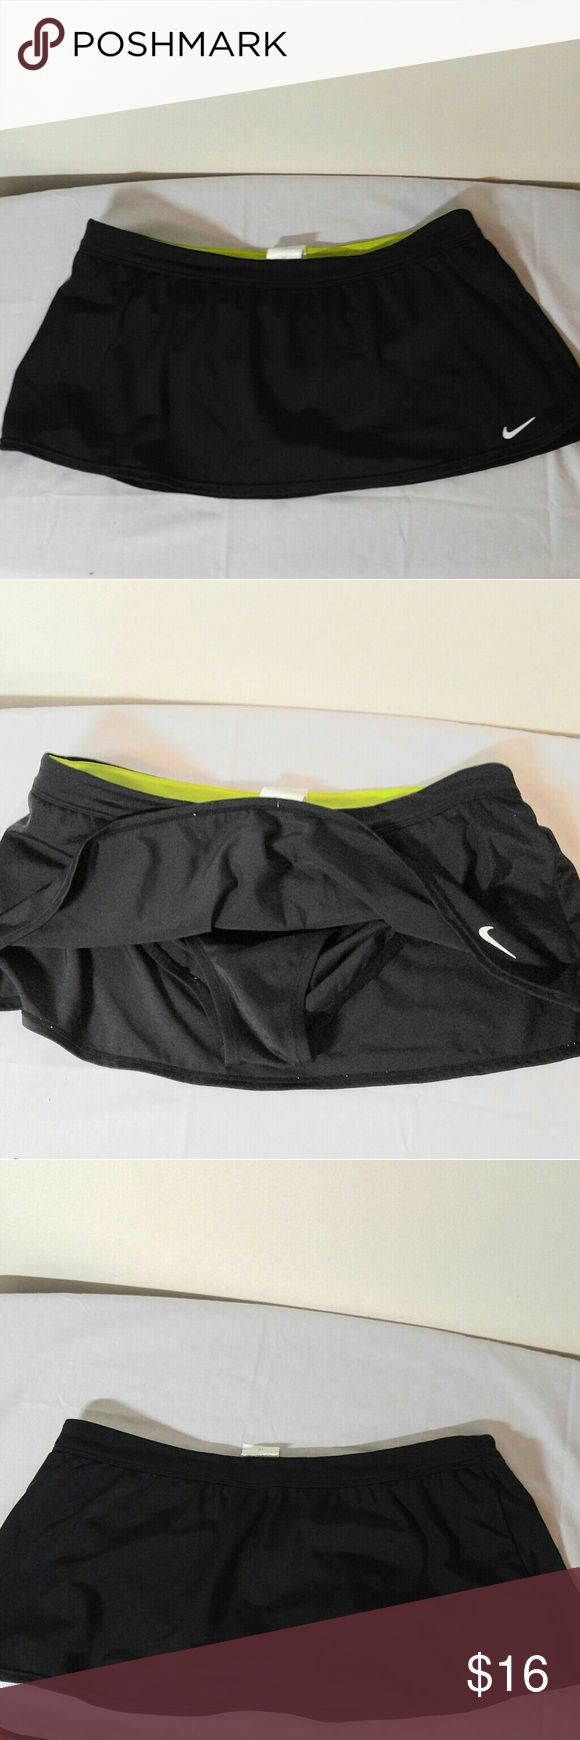 Nike Athletic Skort-Sz 10 Nike Skort-Like New! Skor t is 9 and 3/4 inches from waist to Hem Nike Shorts Skorts